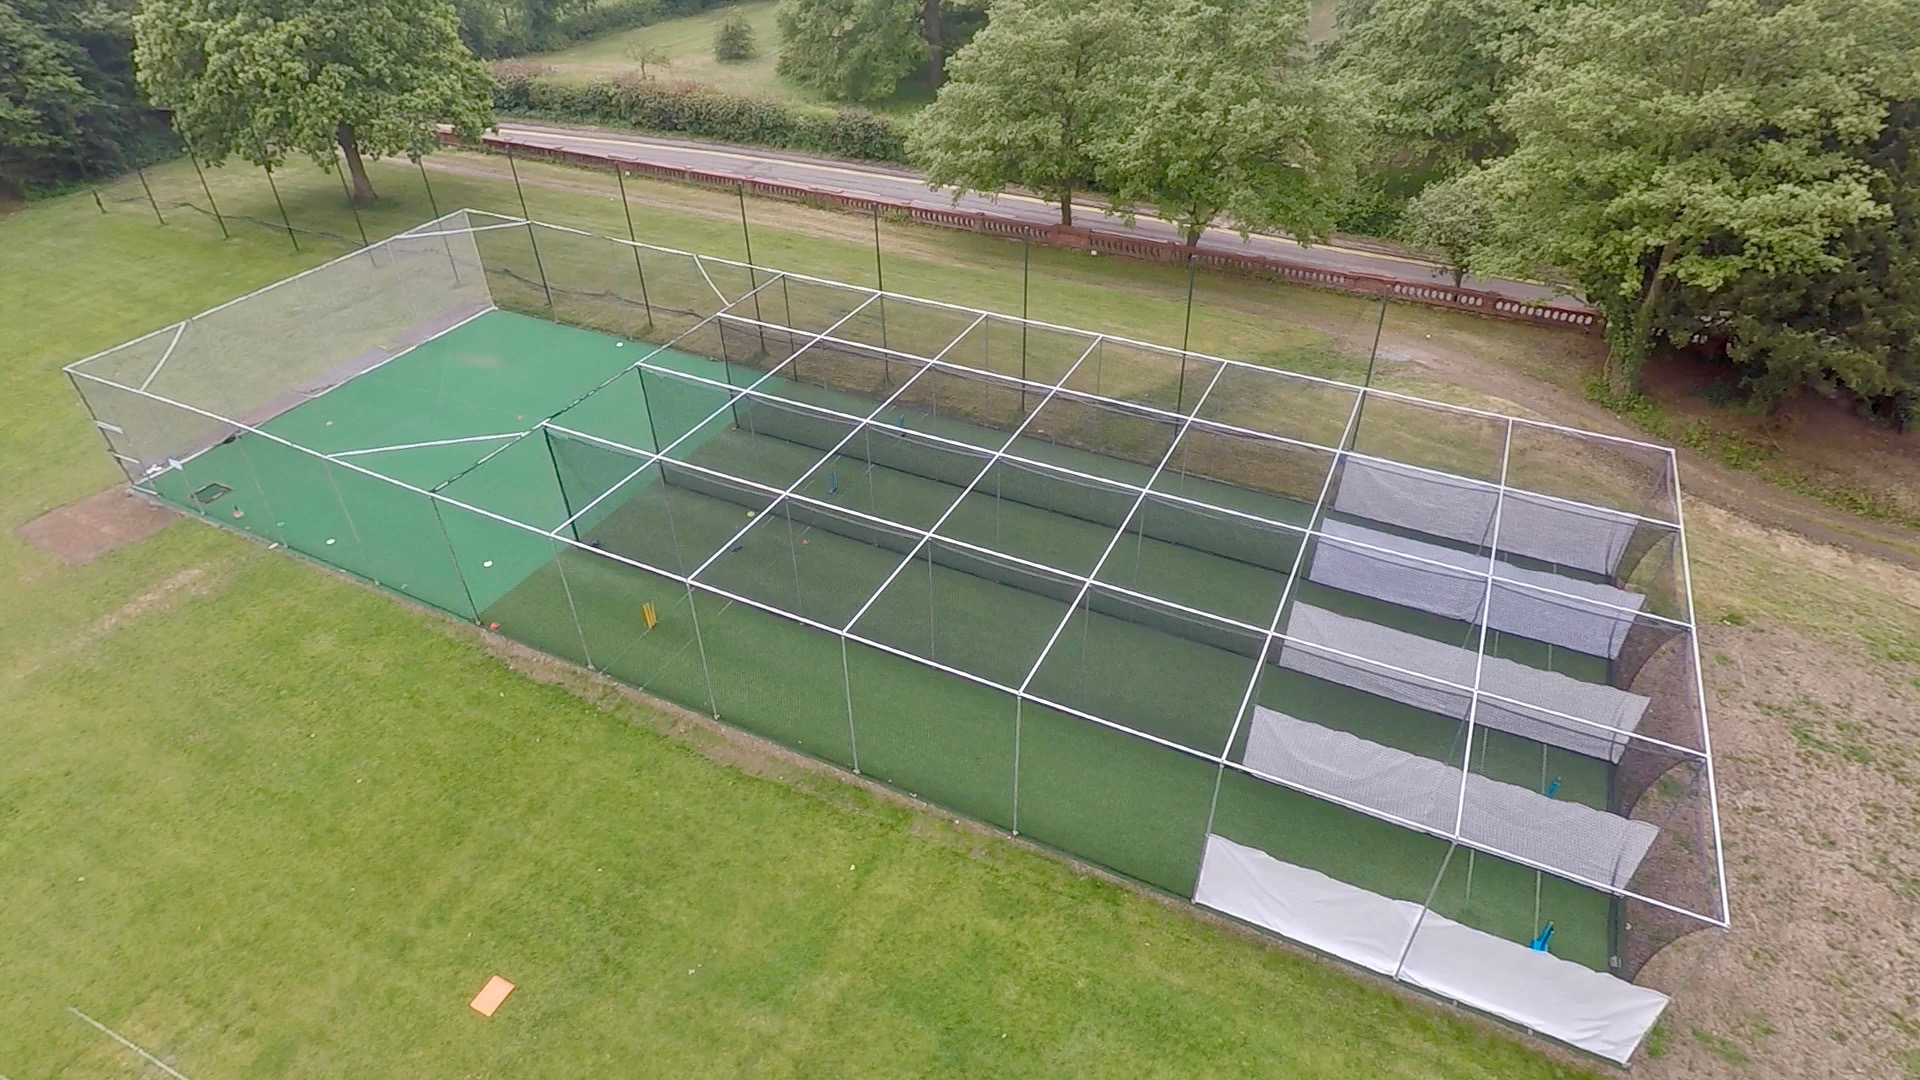 Non Turf Cricket Practice Facility Installation Total Play